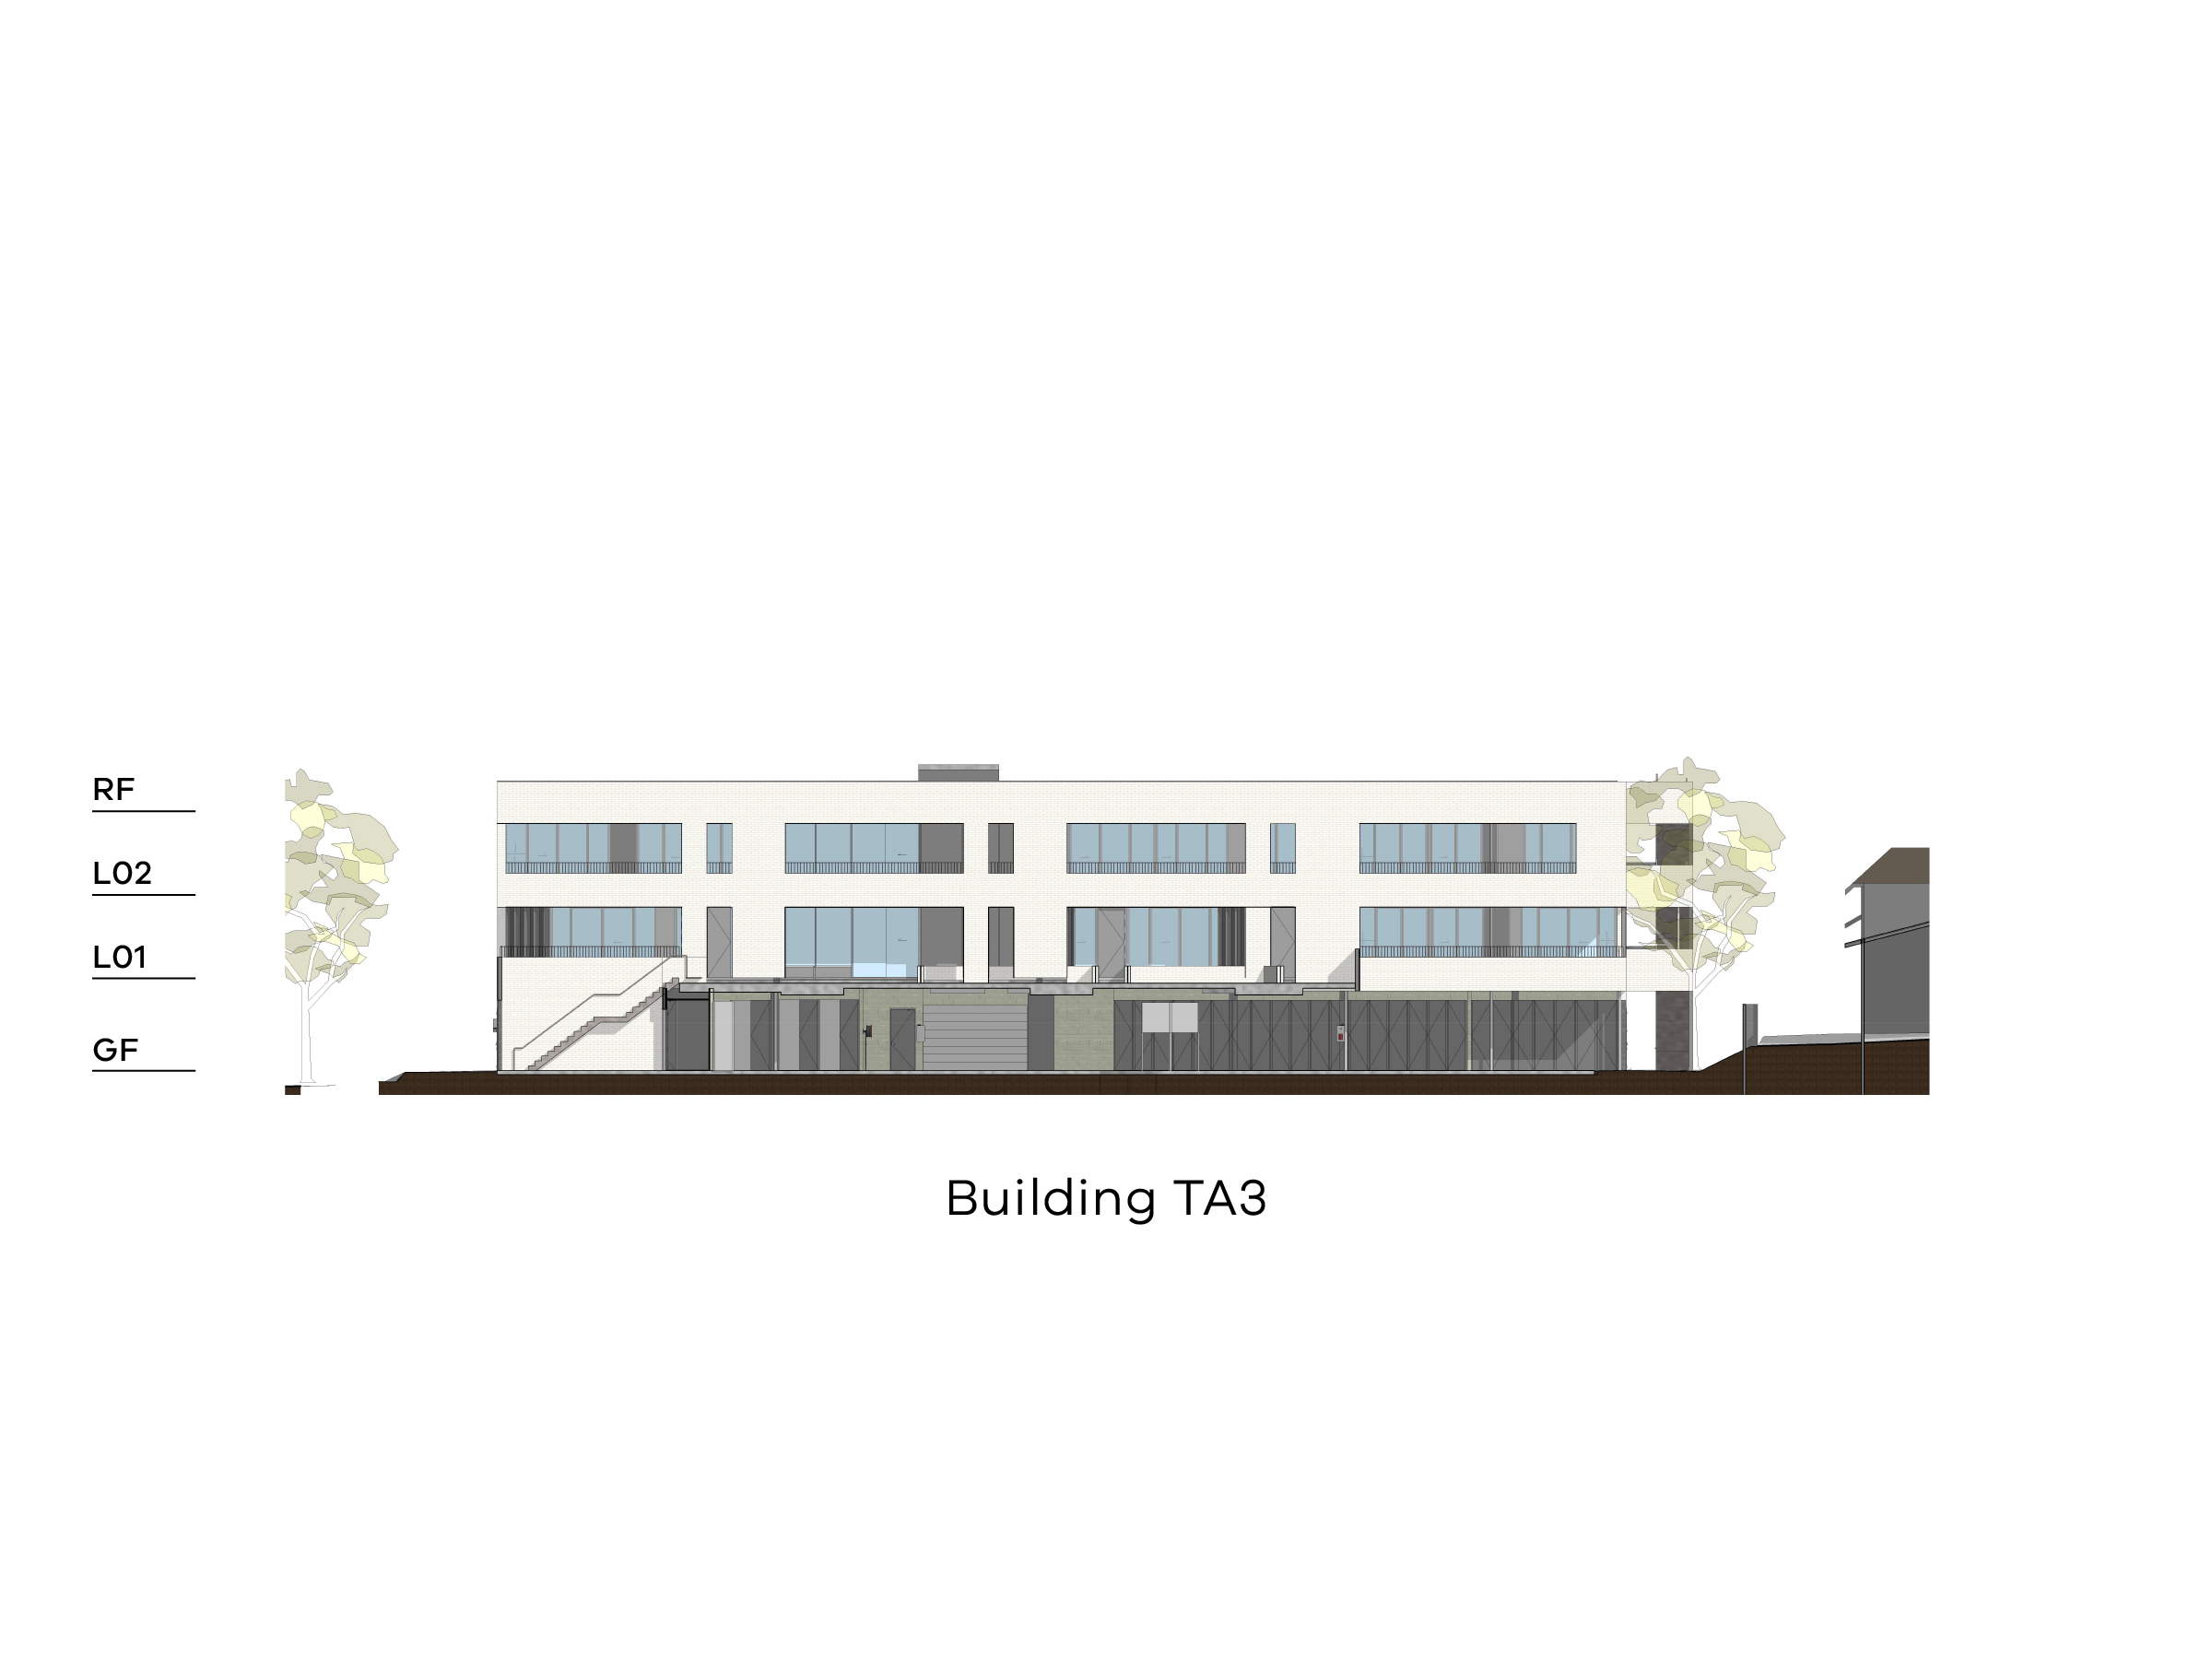 Diagram showing the height of building TA3 as seen through the podium looking north. Building TA3 has a ground level, level 1-2 and a flat roof.